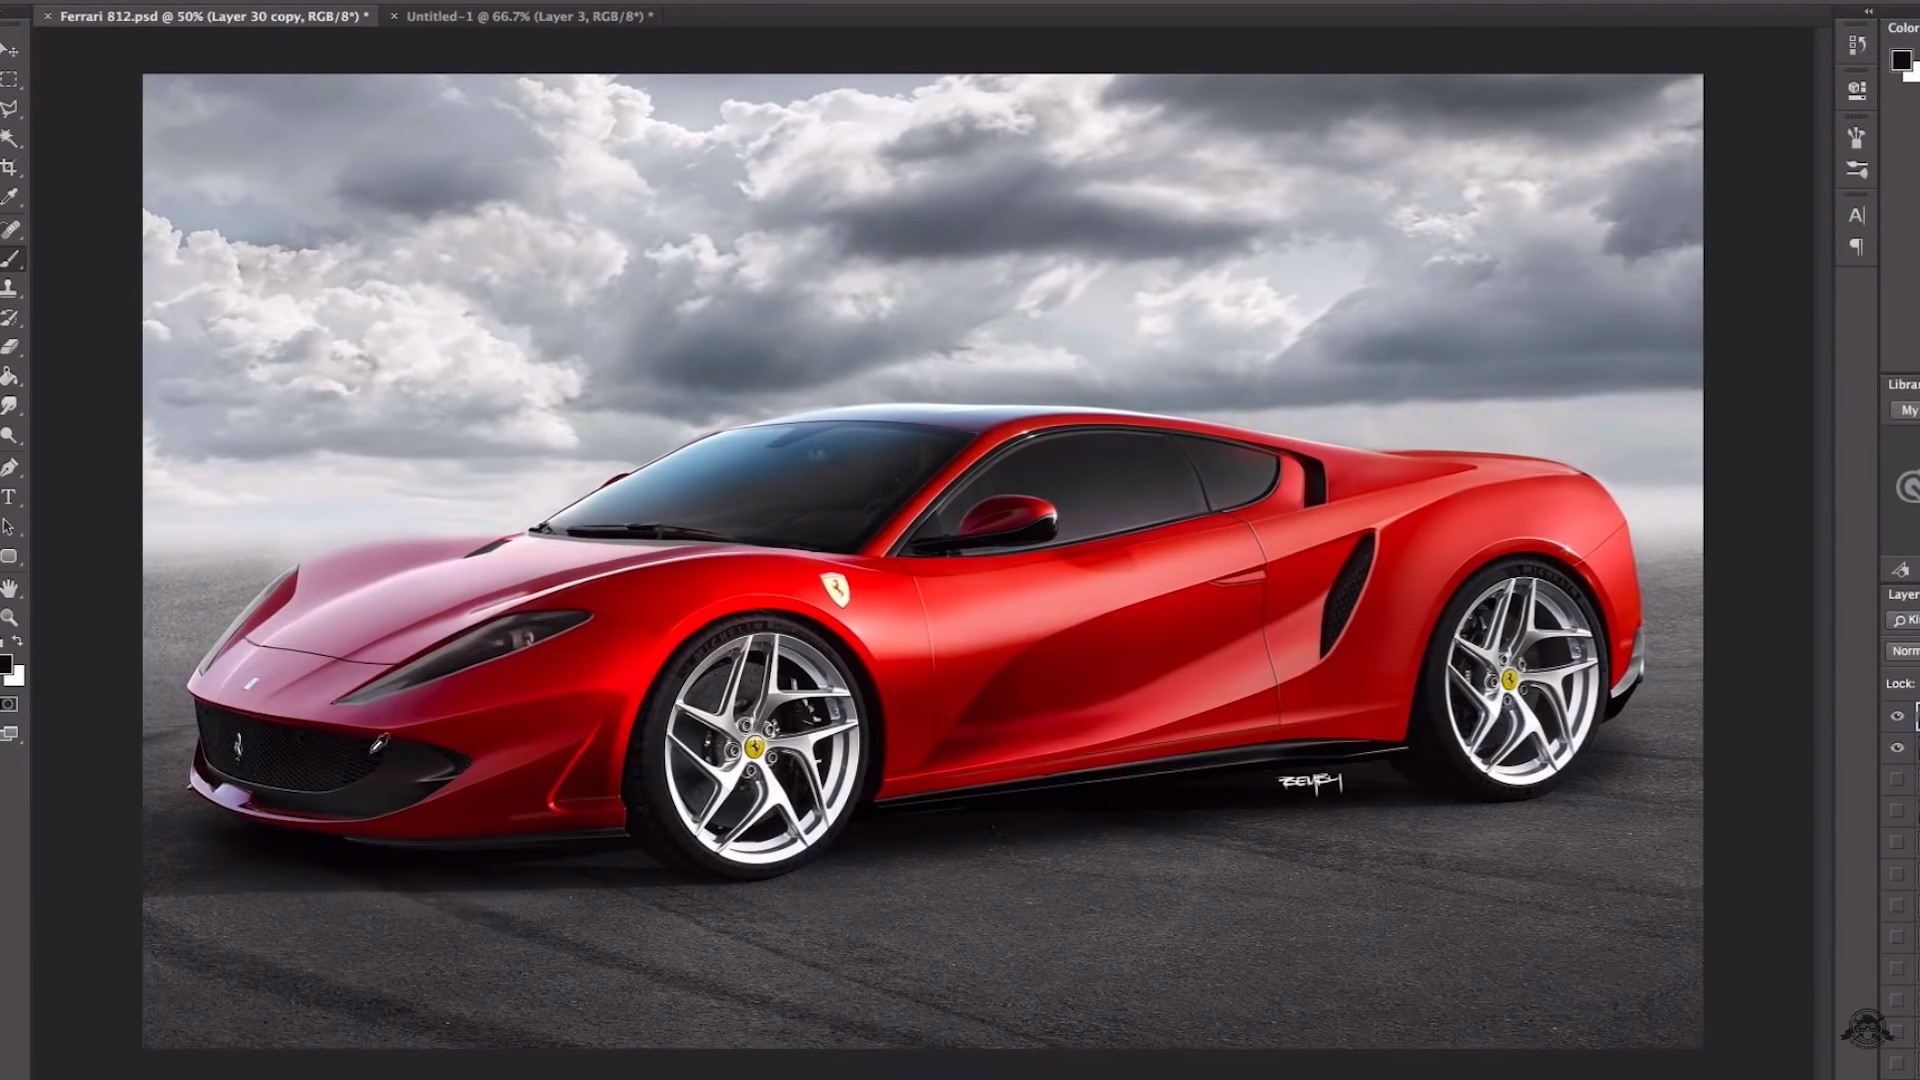 New Video Shows Us What The Ferrari 812 Superfast Would Look Like As A Mid Engined Supercar